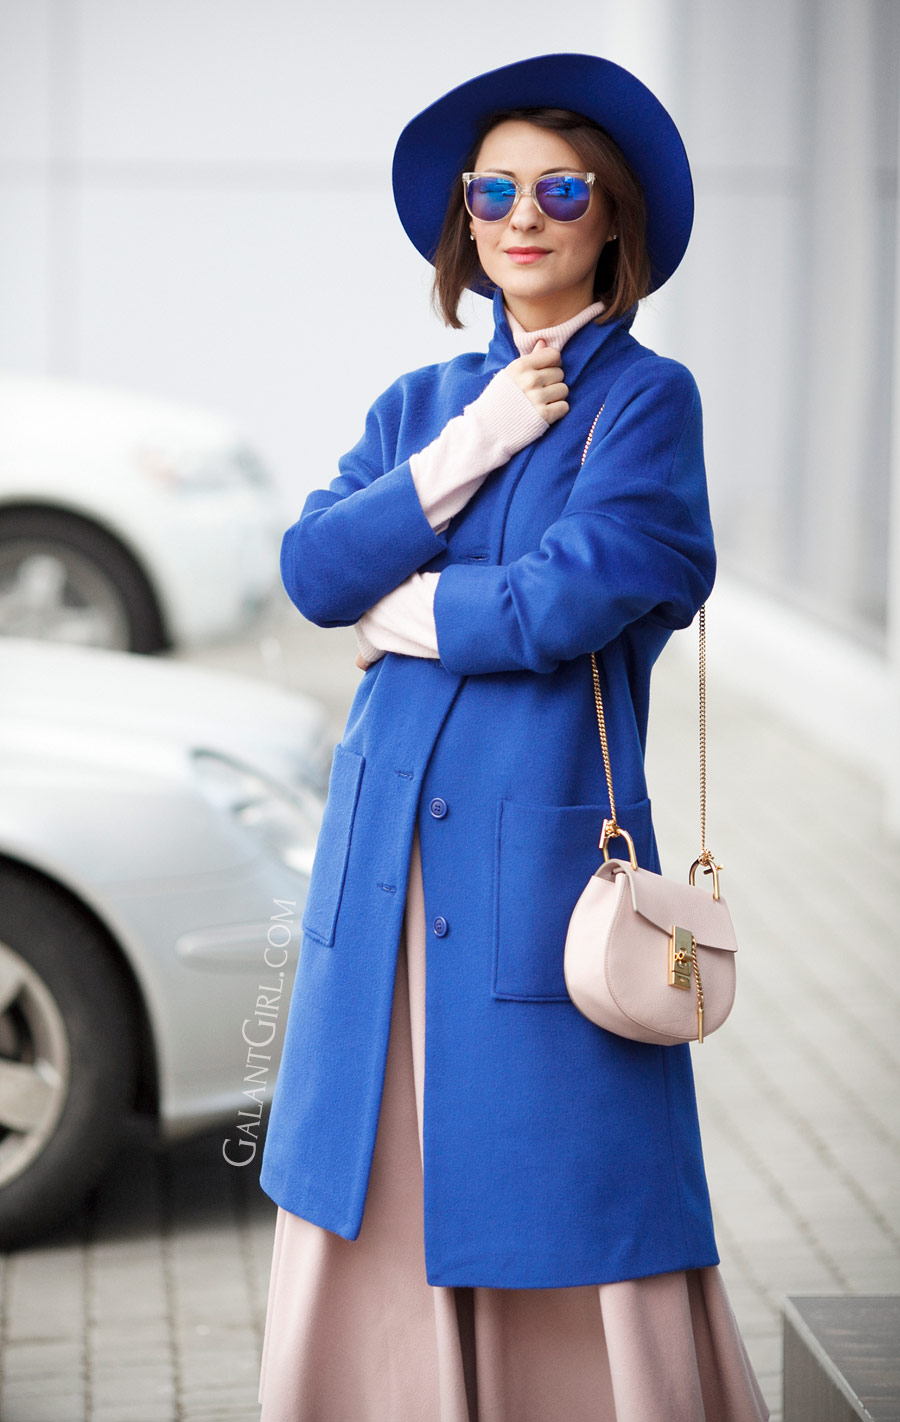 electric blue outfits, chloe drew bag outfits, how to wear blue, how to wear electric blue,